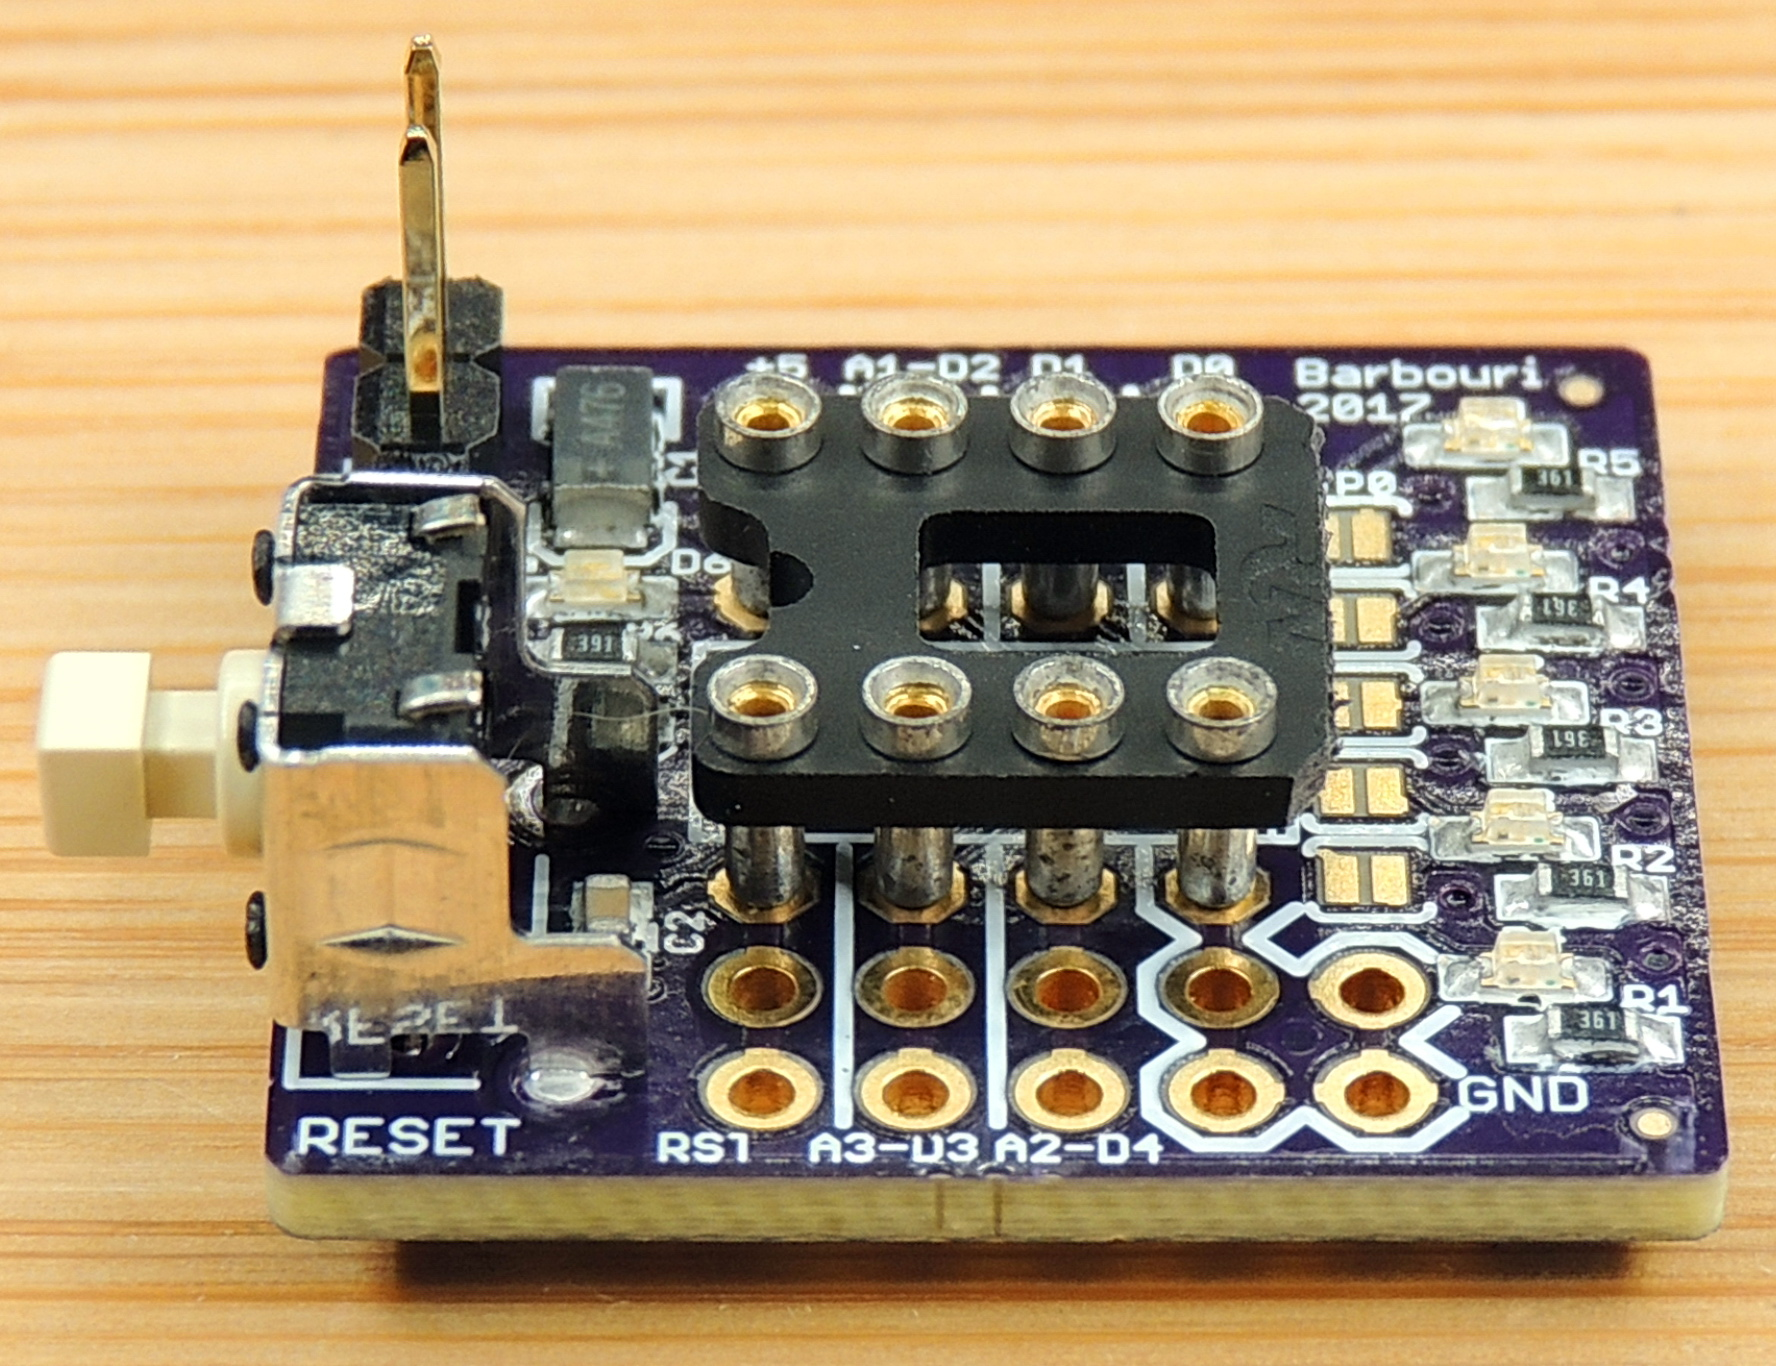 ATtiny85 breakout with selectable LED's - Barbouri's